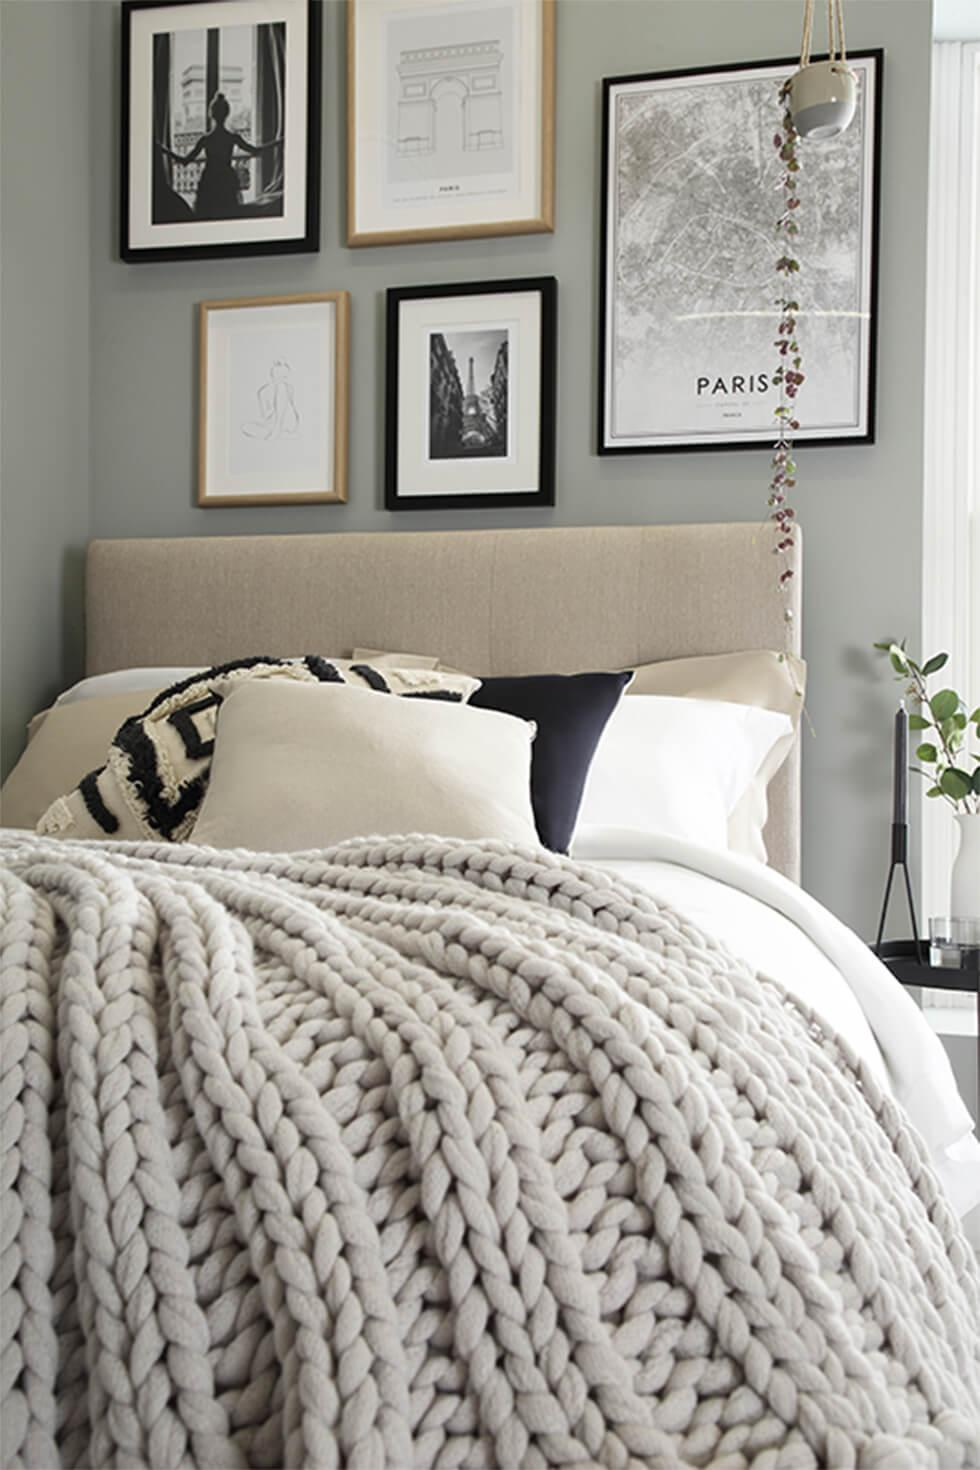 Fabric bed with knitted blanket and framed gallery wall